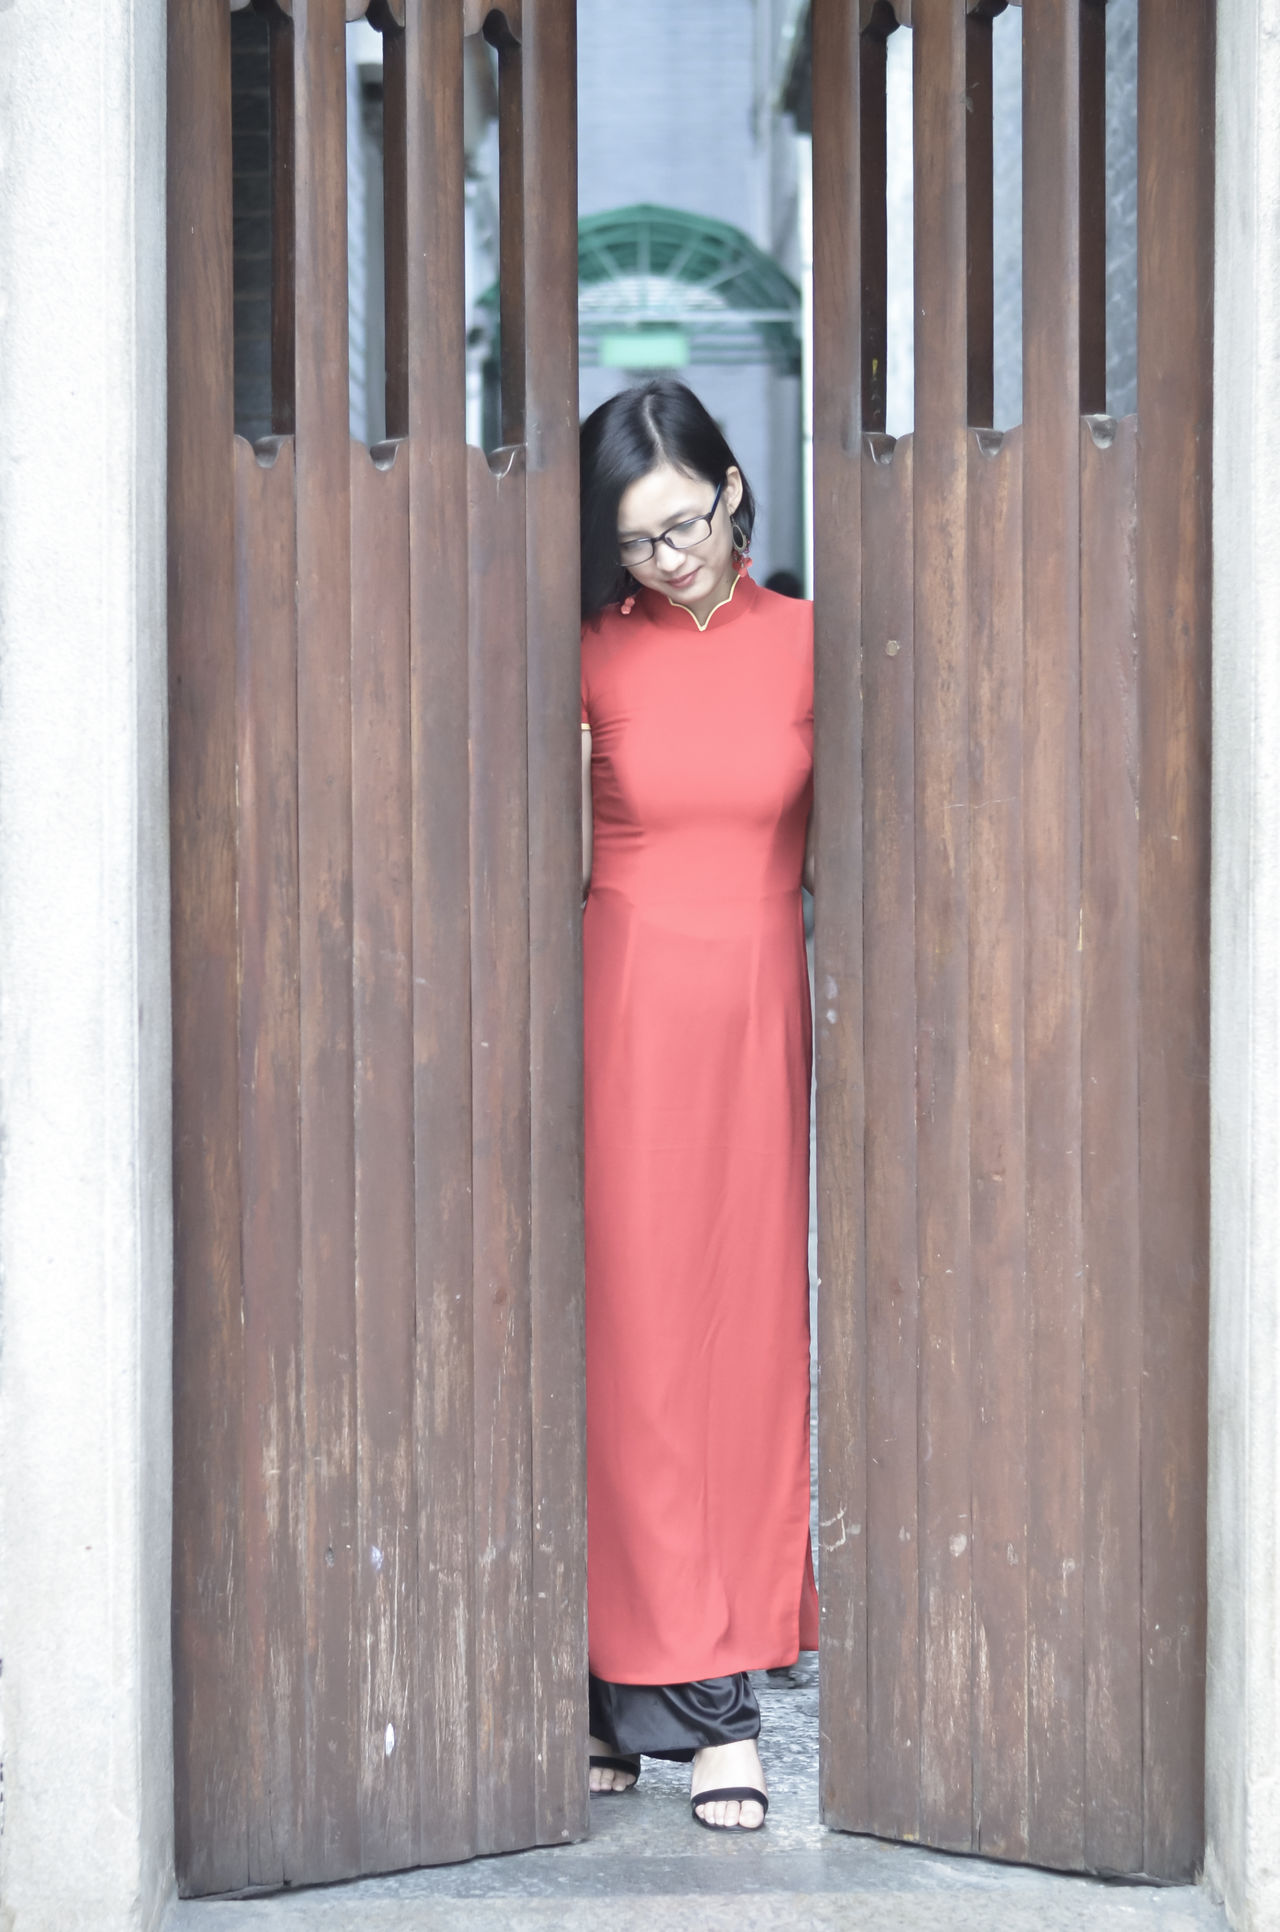 Girl and Ao dai Viet Nam Ao Dai Vietnam Beautiful Beautiful Woman Day Flower Focus Object Girl Portrait Tet 2017 Tet Holiday Tet In Saigon Thien Hau Temple Tết Việt Nam Viet Nam áo Dài ❤